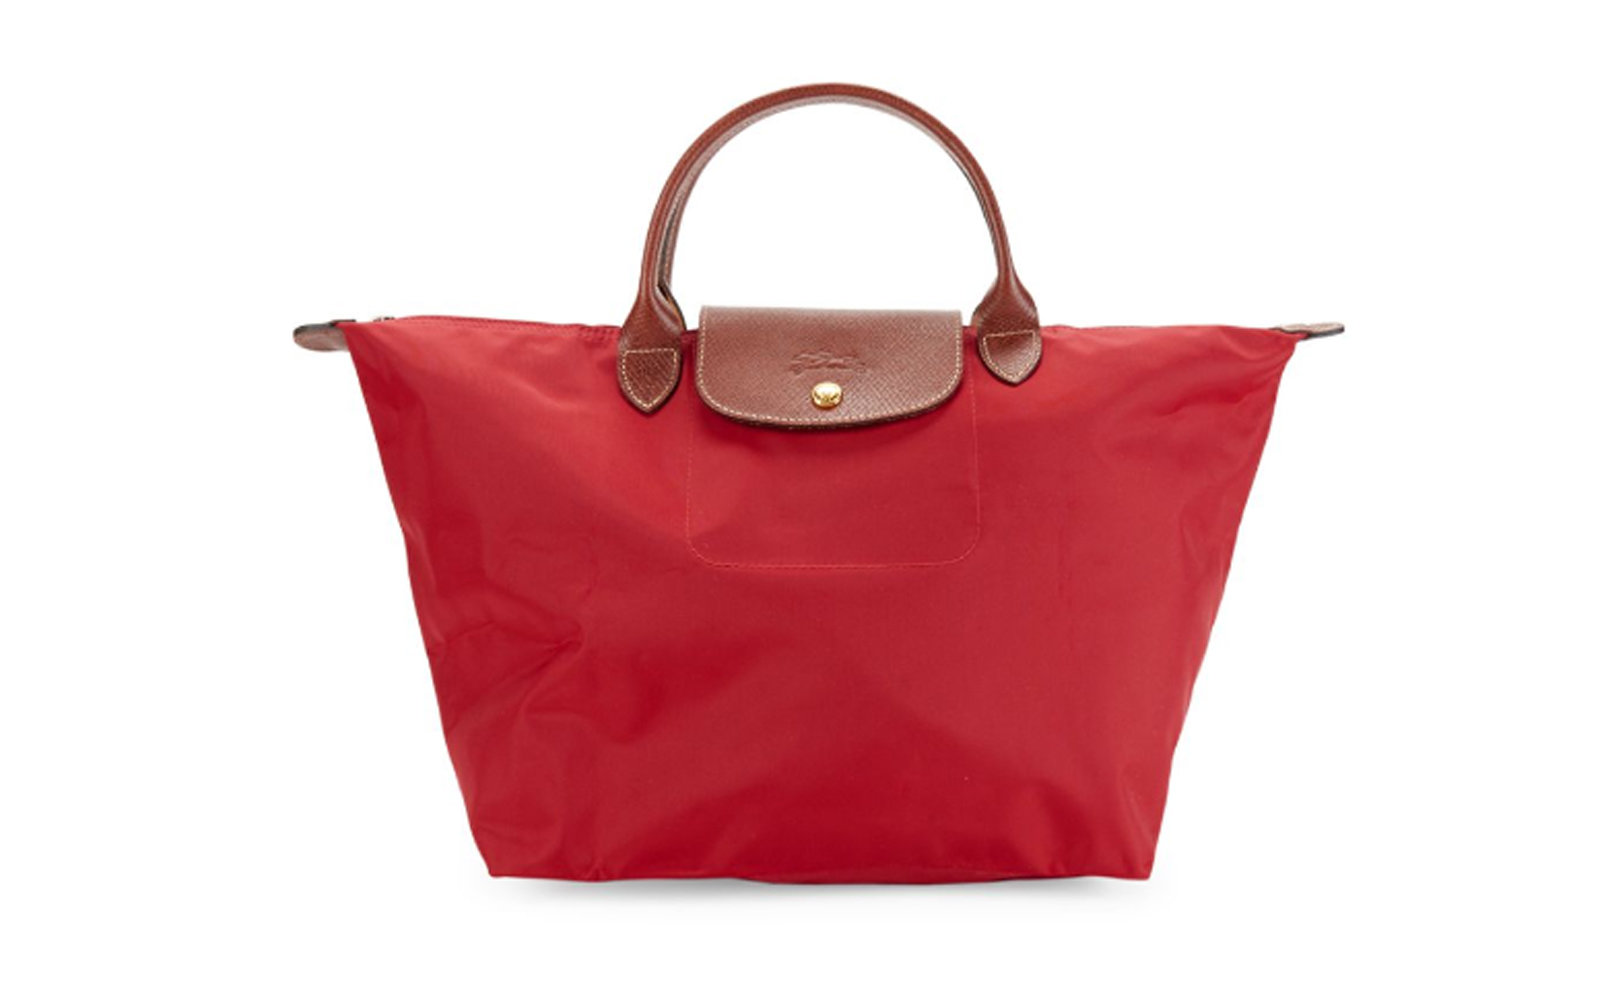 Longchamp Le Pliage Tote Bag in Red